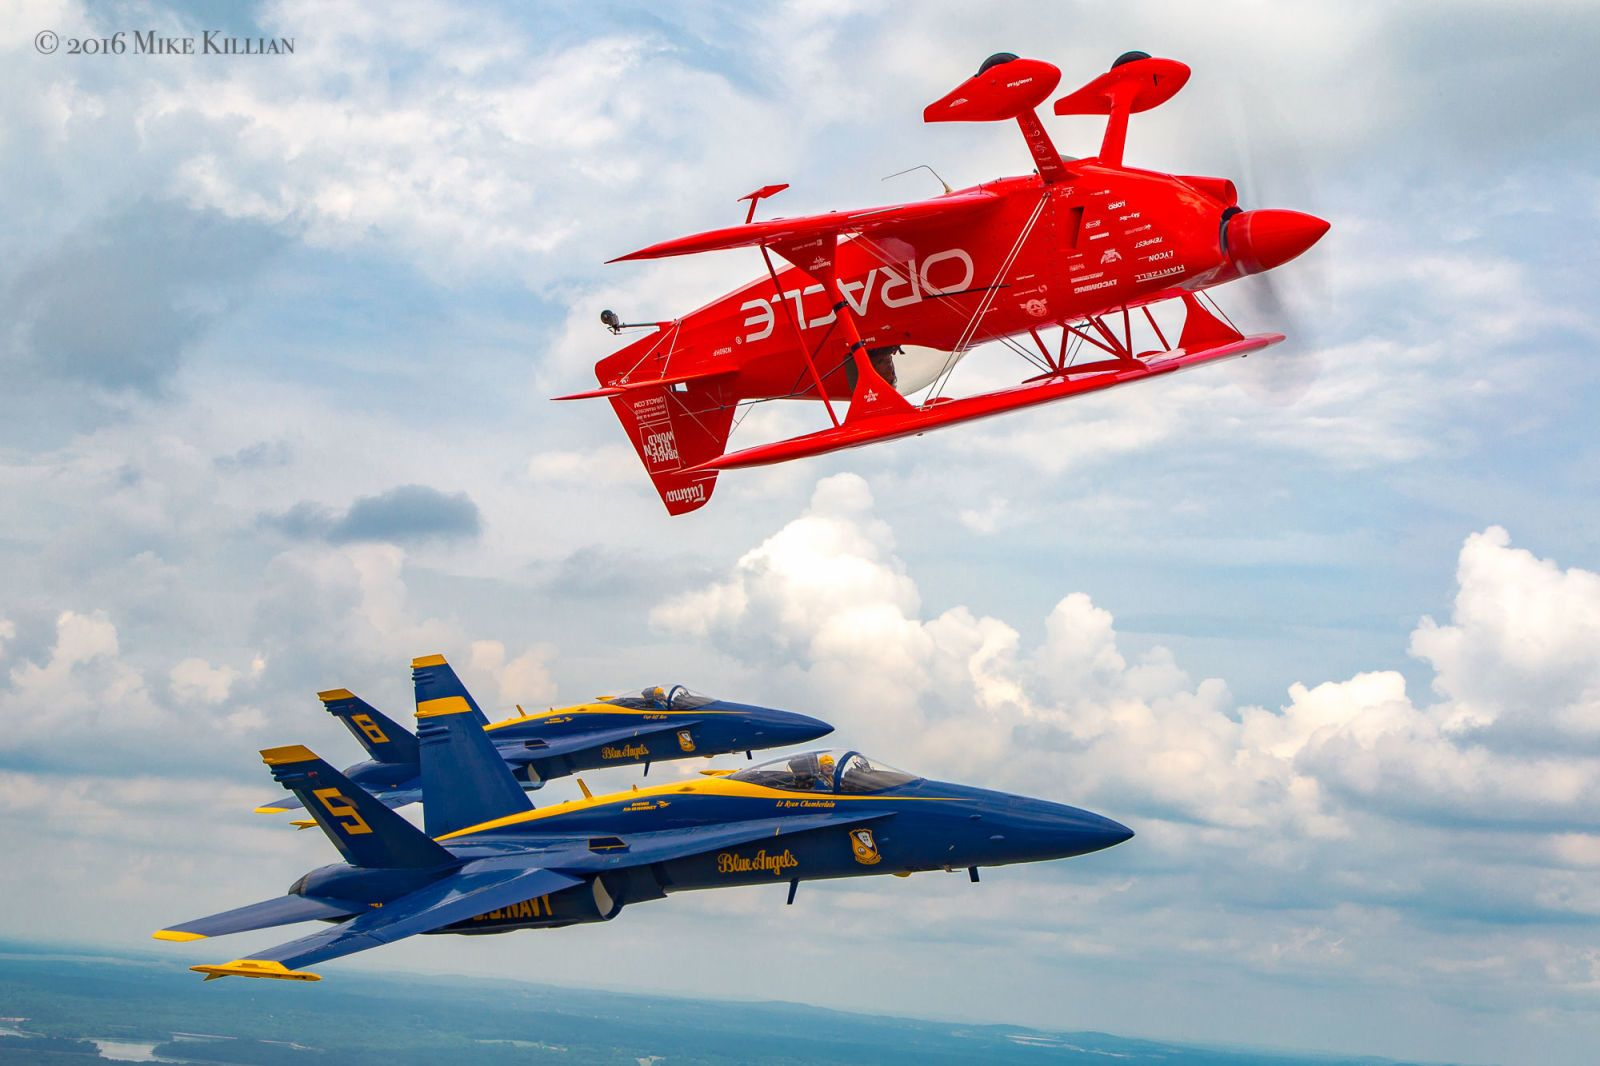 Air Show Photographers Made This Video Tribute to a Fallen Blue Angel